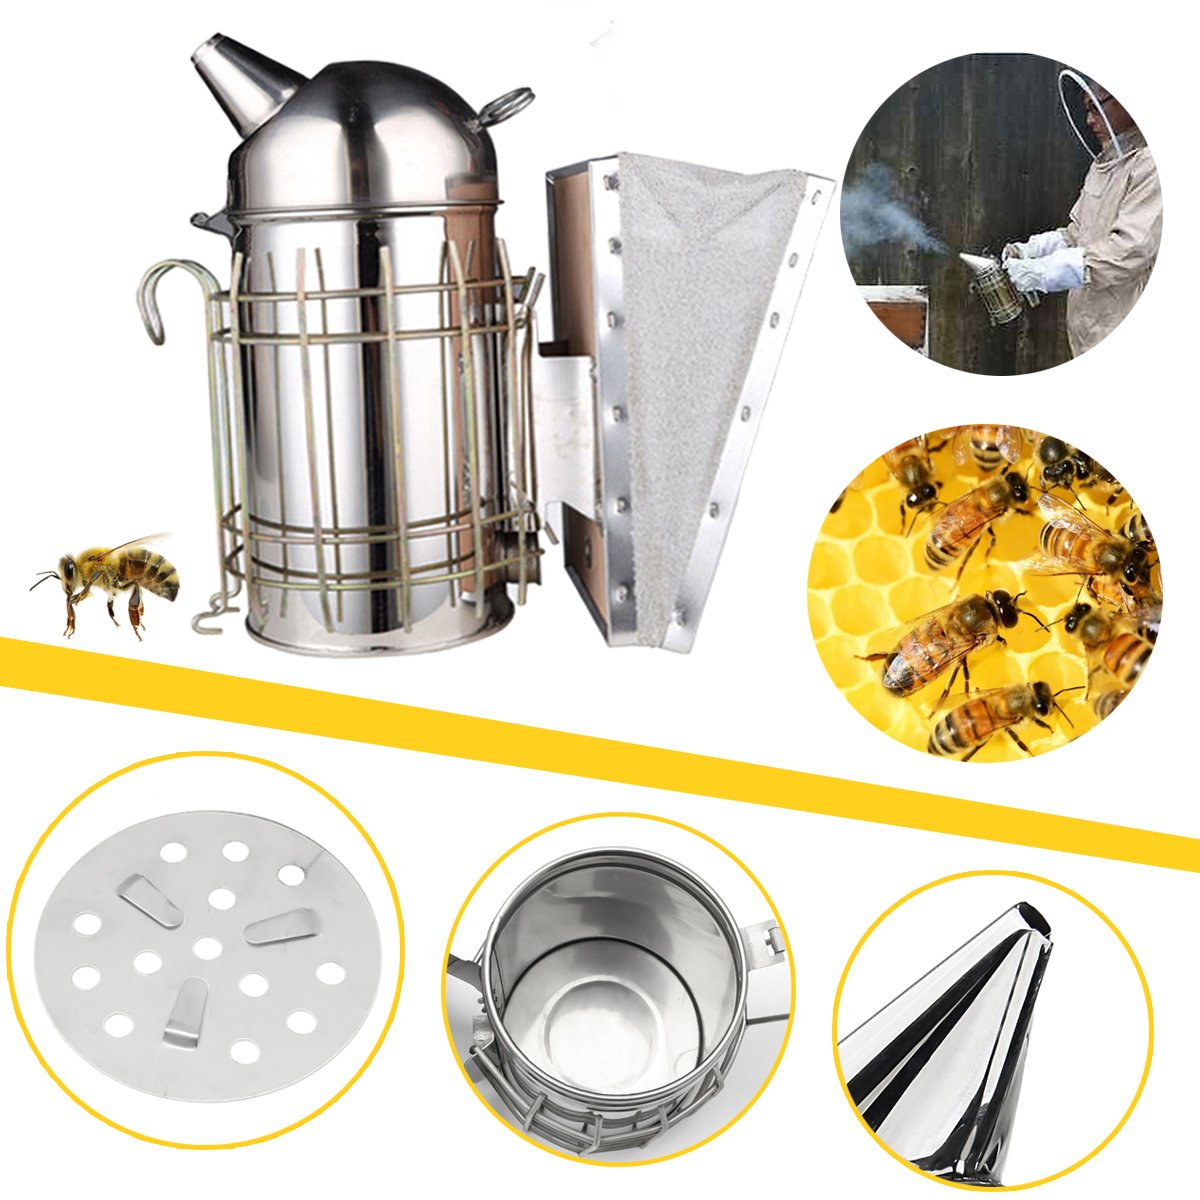 Janolia Beehive Smoker, Stainless Steel Heat Shield Beekeeping Equipment, Bees Smoking Calming Tools for Beekeeping Apiculture, Bee Culture silver 10.6 x 4.09in